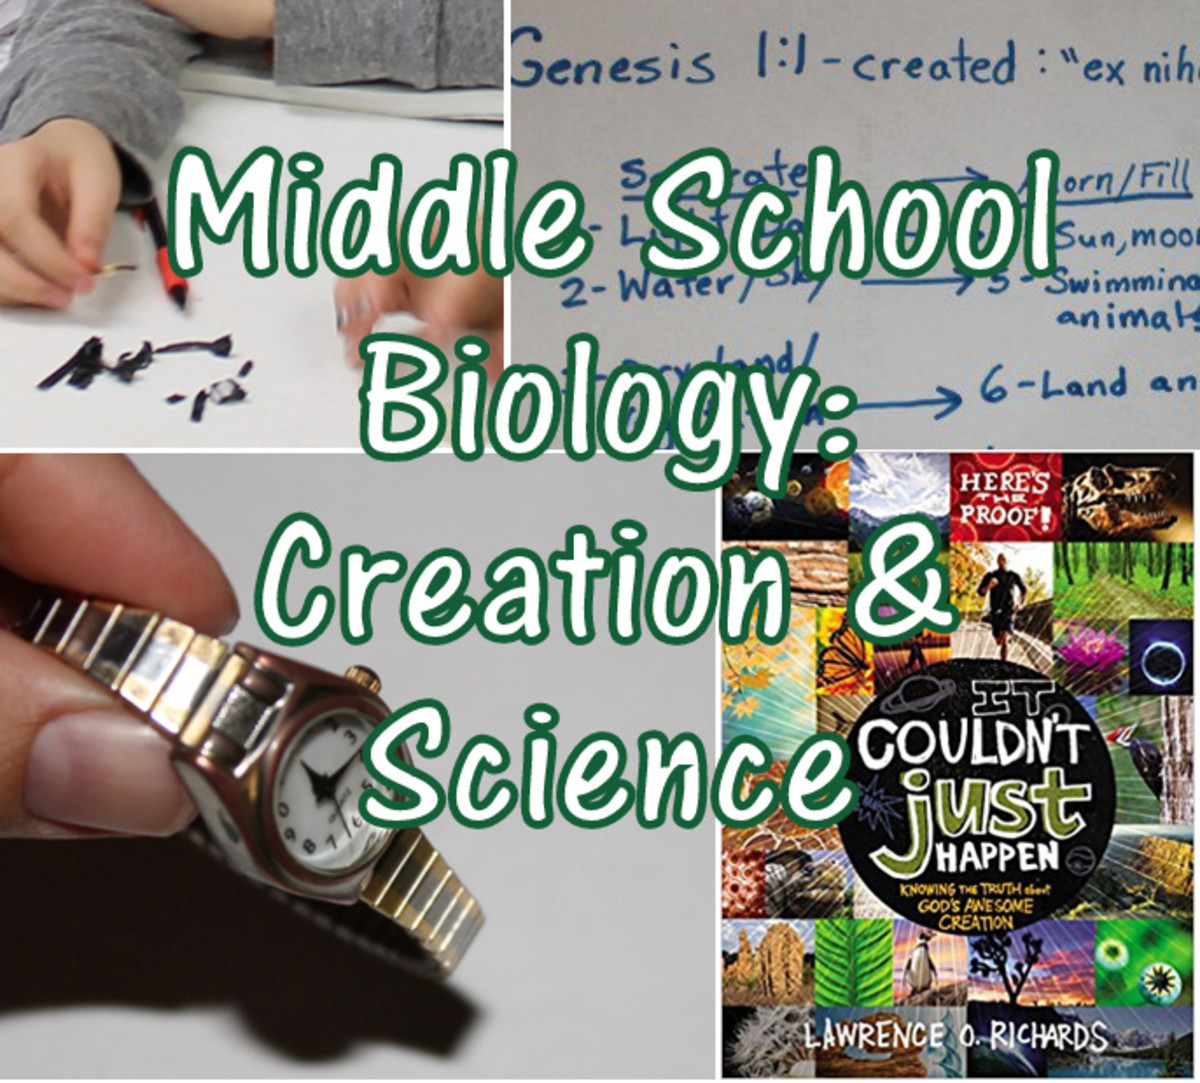 Creation and Science Lesson for Middle School Biology